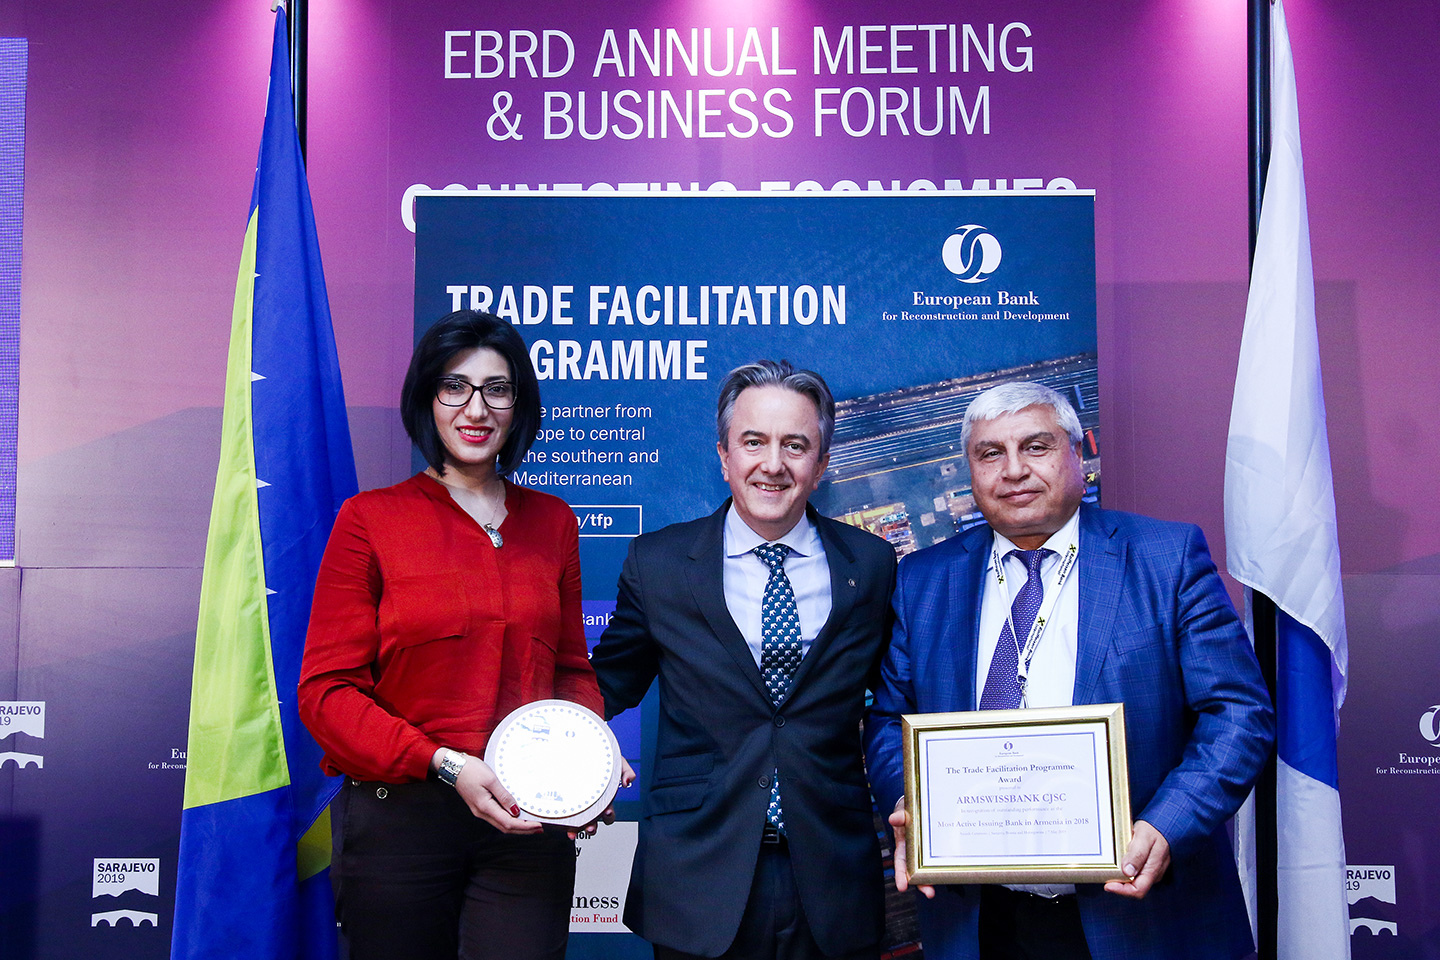 """ARMSWISSBANK was awarded """"most active issuing bank in armenia"""" by EBRD"""